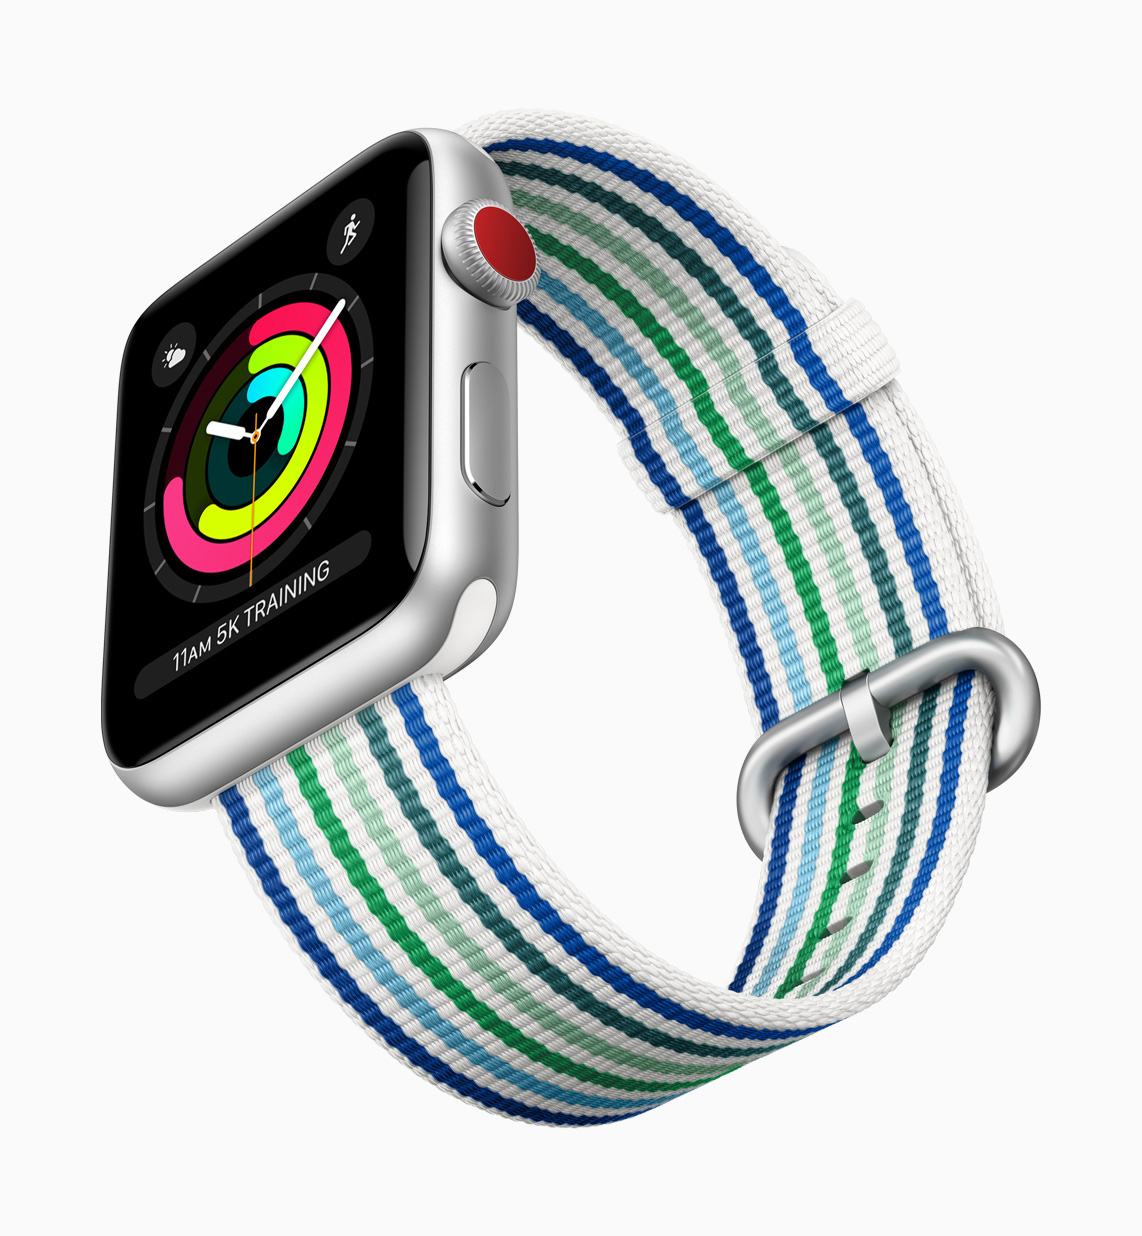 Apple anuncia nova coleo de pulseiras para o apple watch ihelp br as novas pulseiras estaro disponveis para compra no site da apple ainda no final desse ms sem data definida inclusive no brasil com exceo da linha thecheapjerseys Image collections